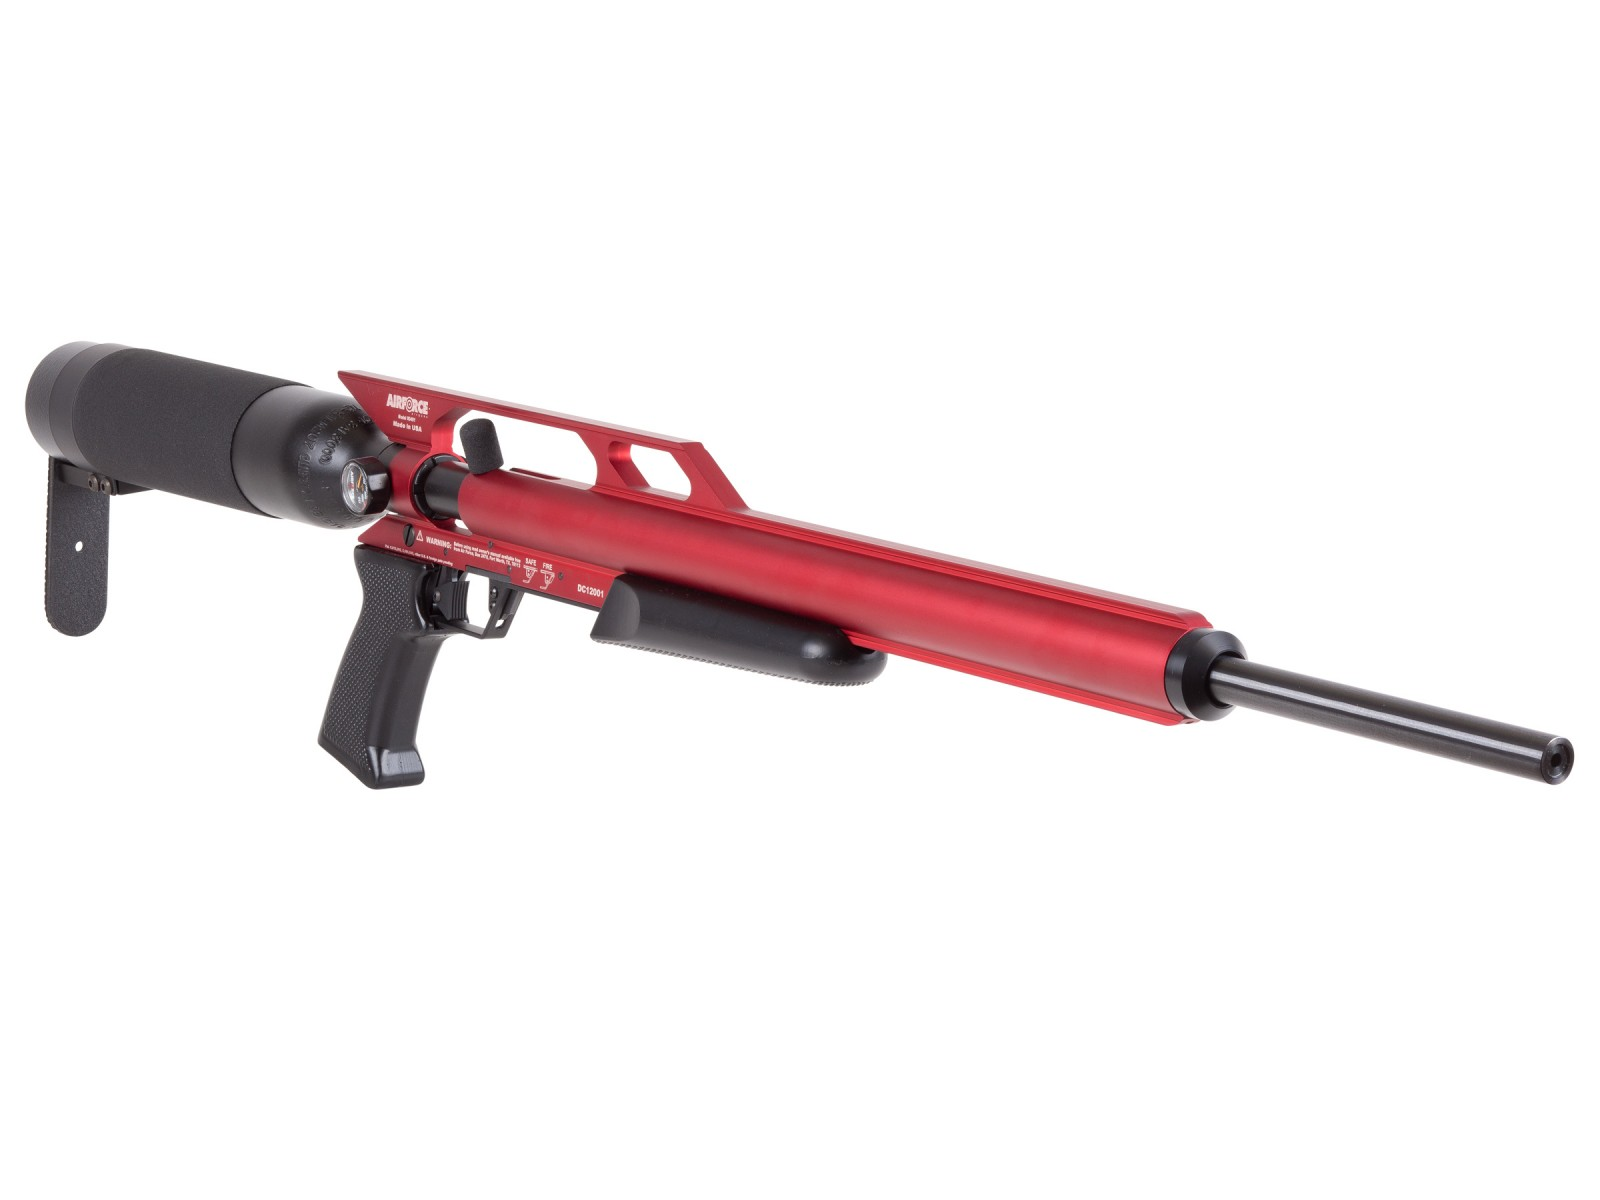 AirForce Condor PCP Air Rifle, Spin-Loc Tank, Red 0.22 Image